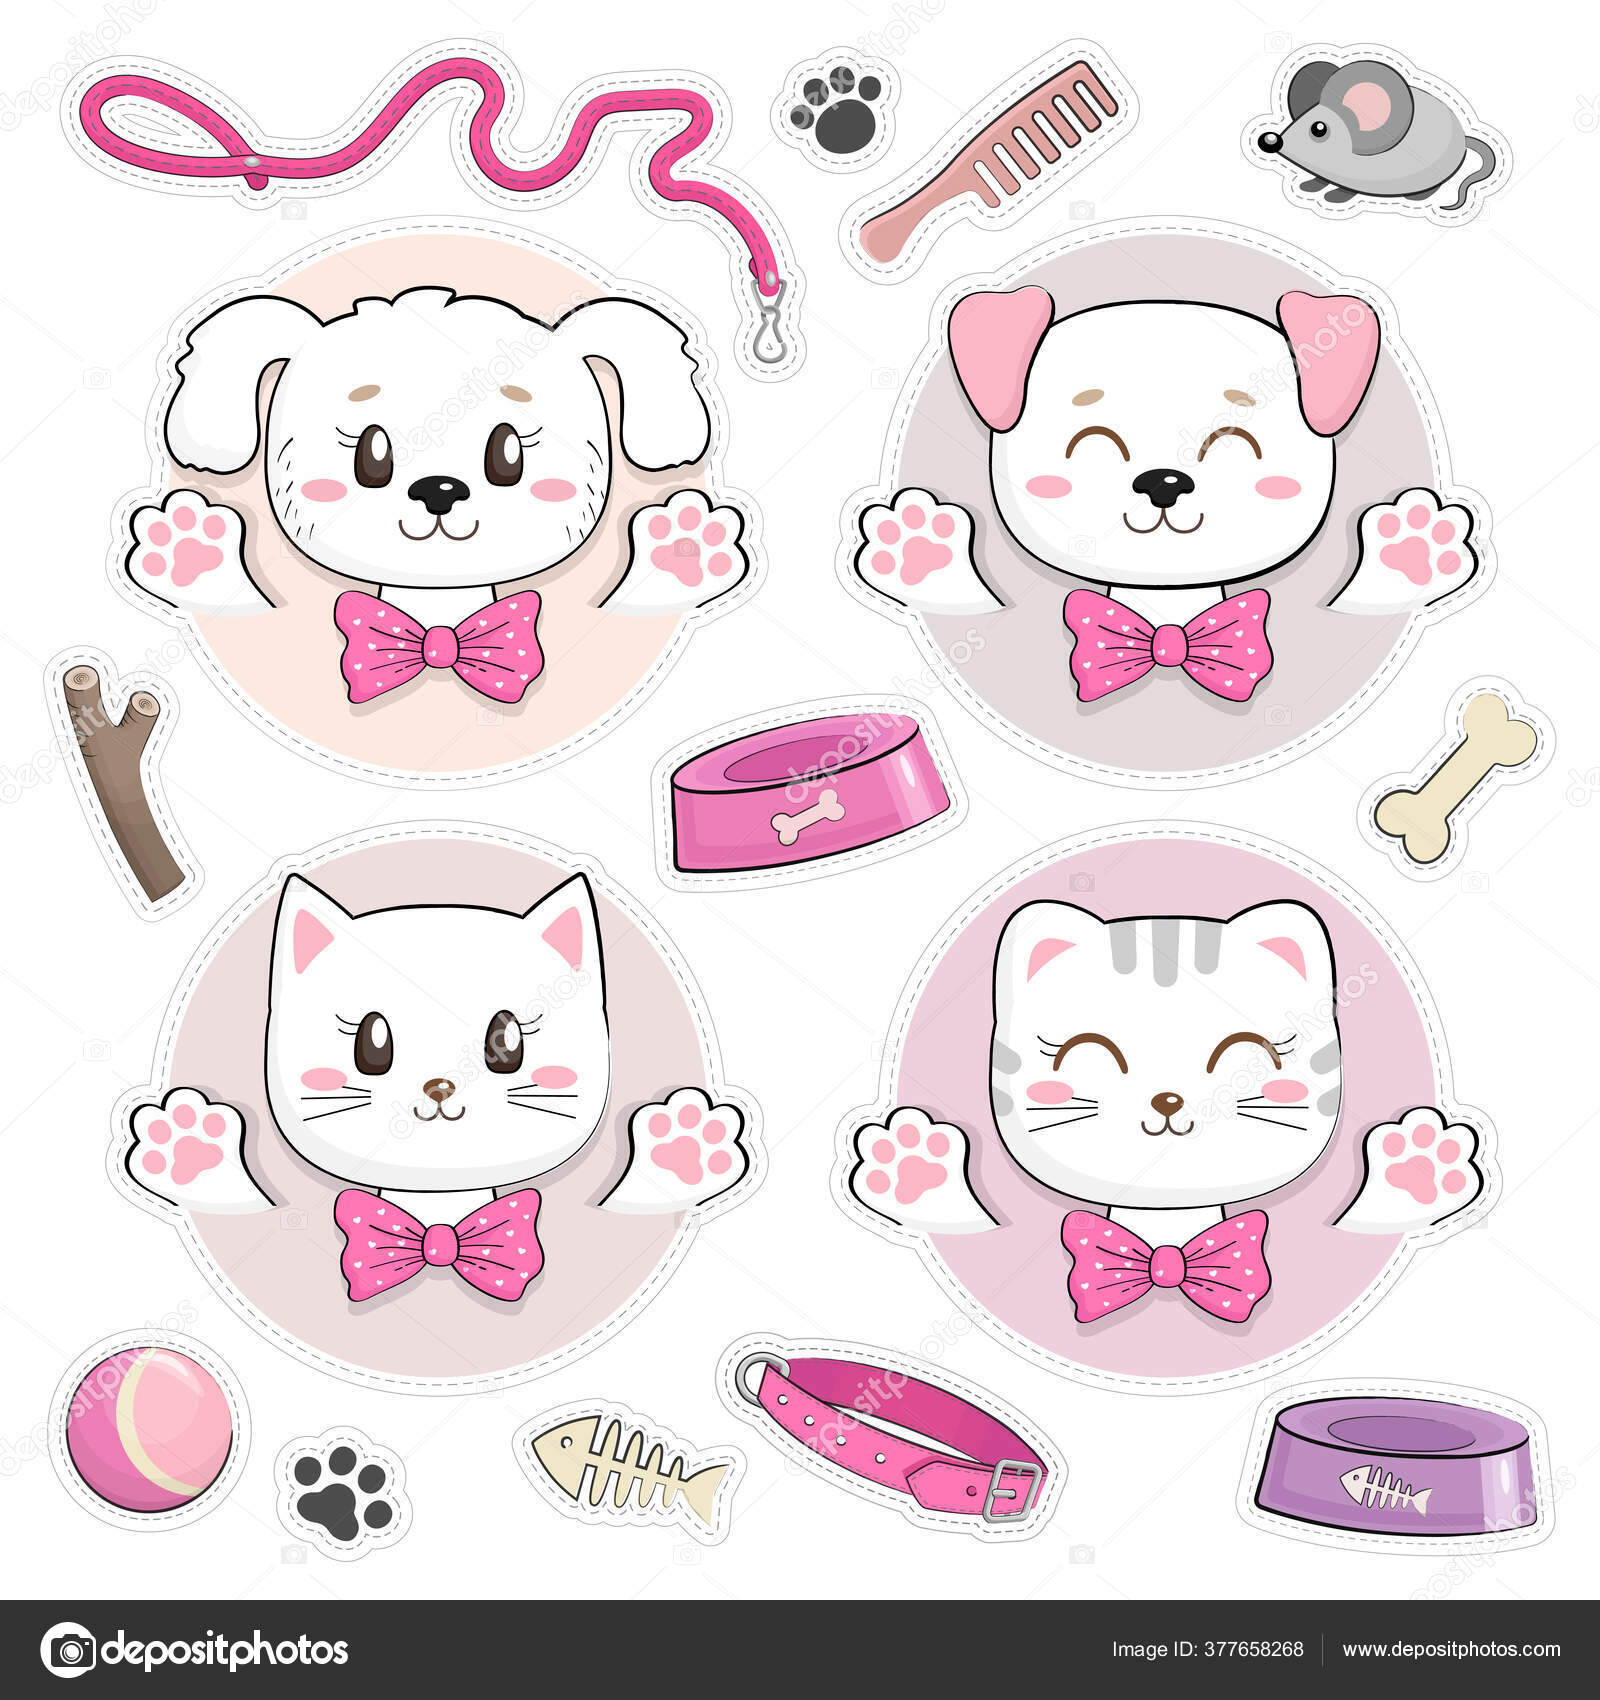 Set Stickers Cute Kittens Puppies Stuff Funny Baby Cats Dogs Stock Vector C Werramka 377658268